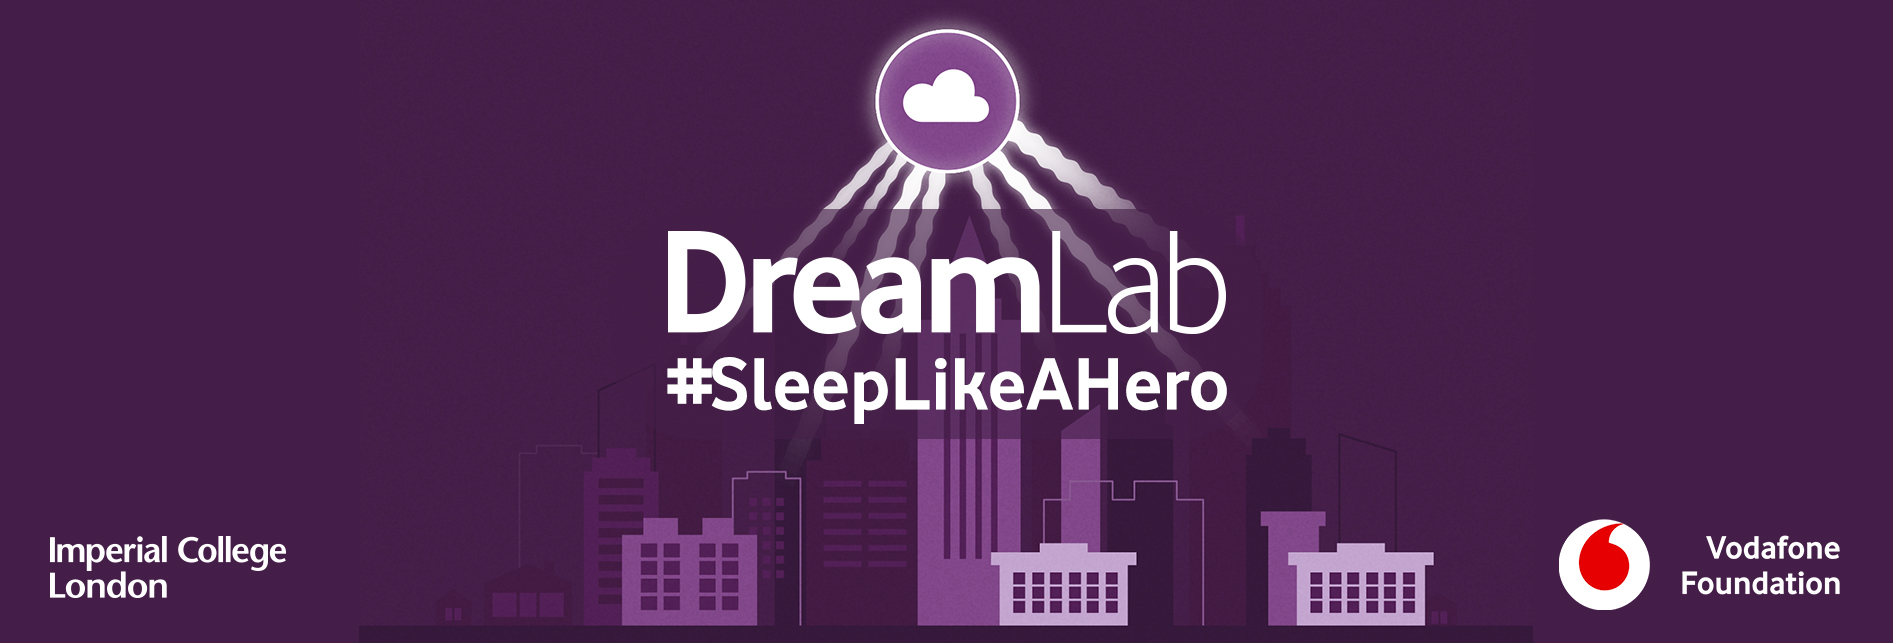 First anniversary of DreamLab in the UK